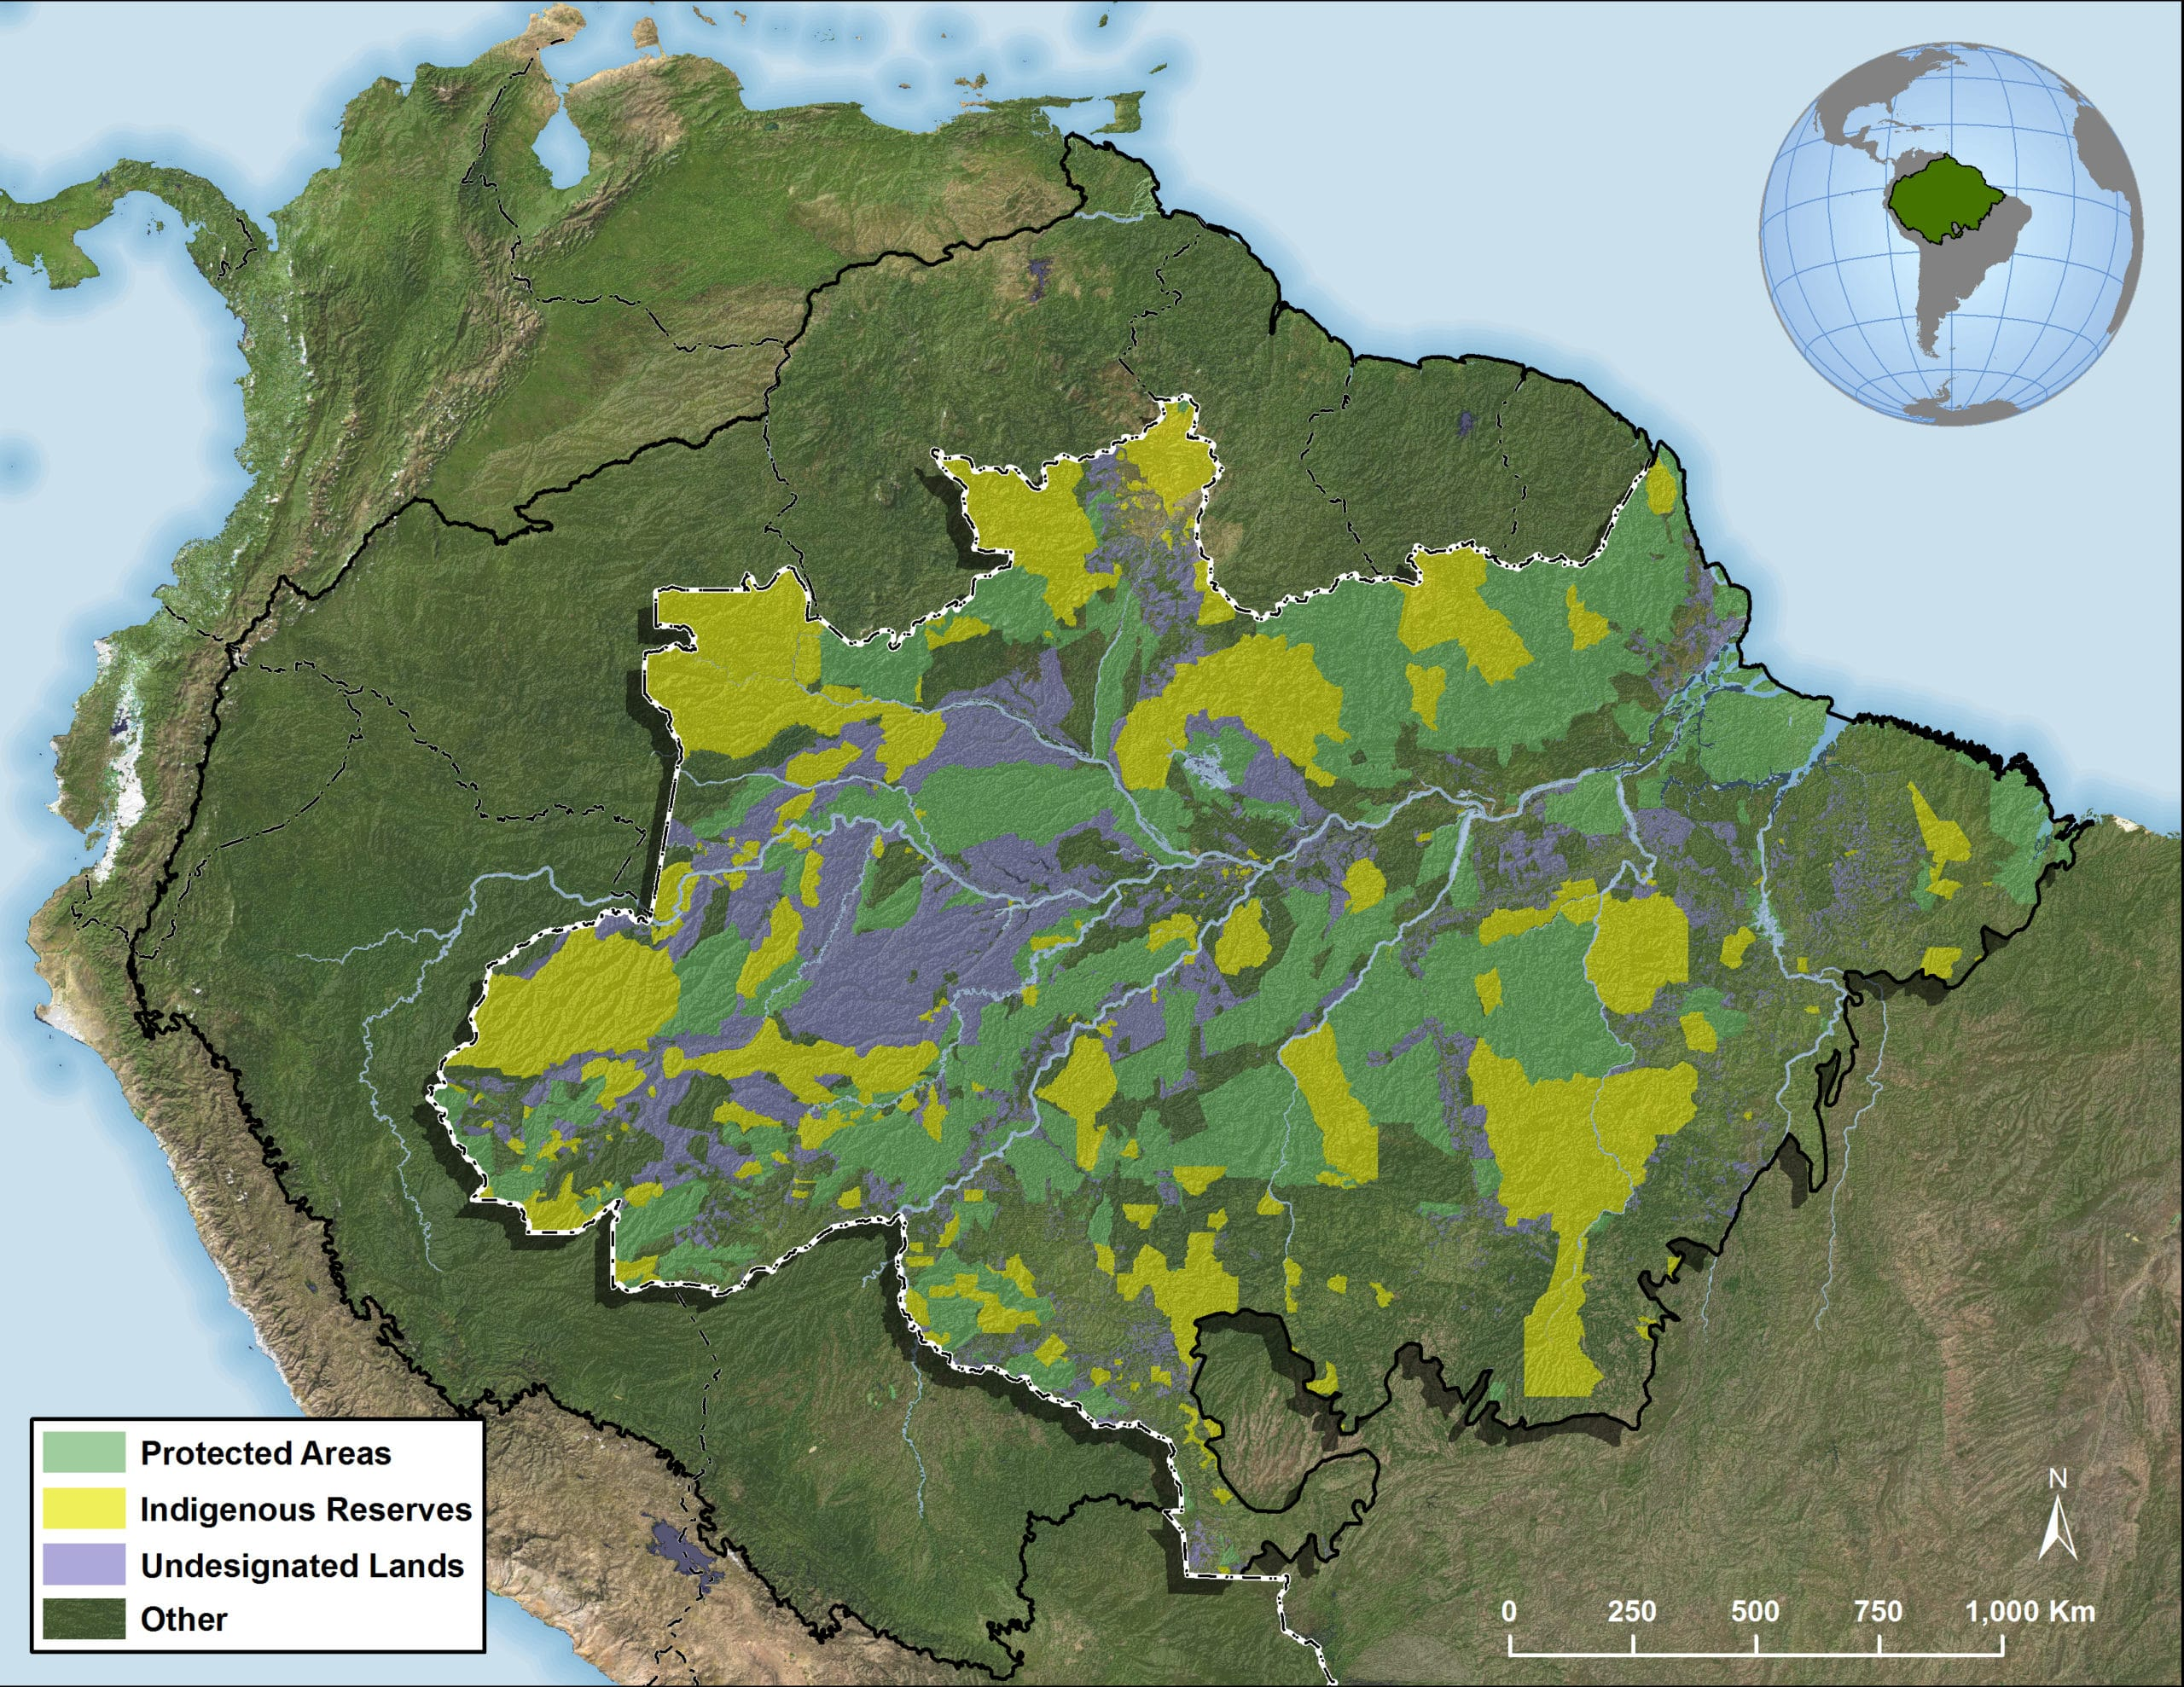 Losses in aboveground carbon (MtC) from 2003-2016 in the Brazil Amazon